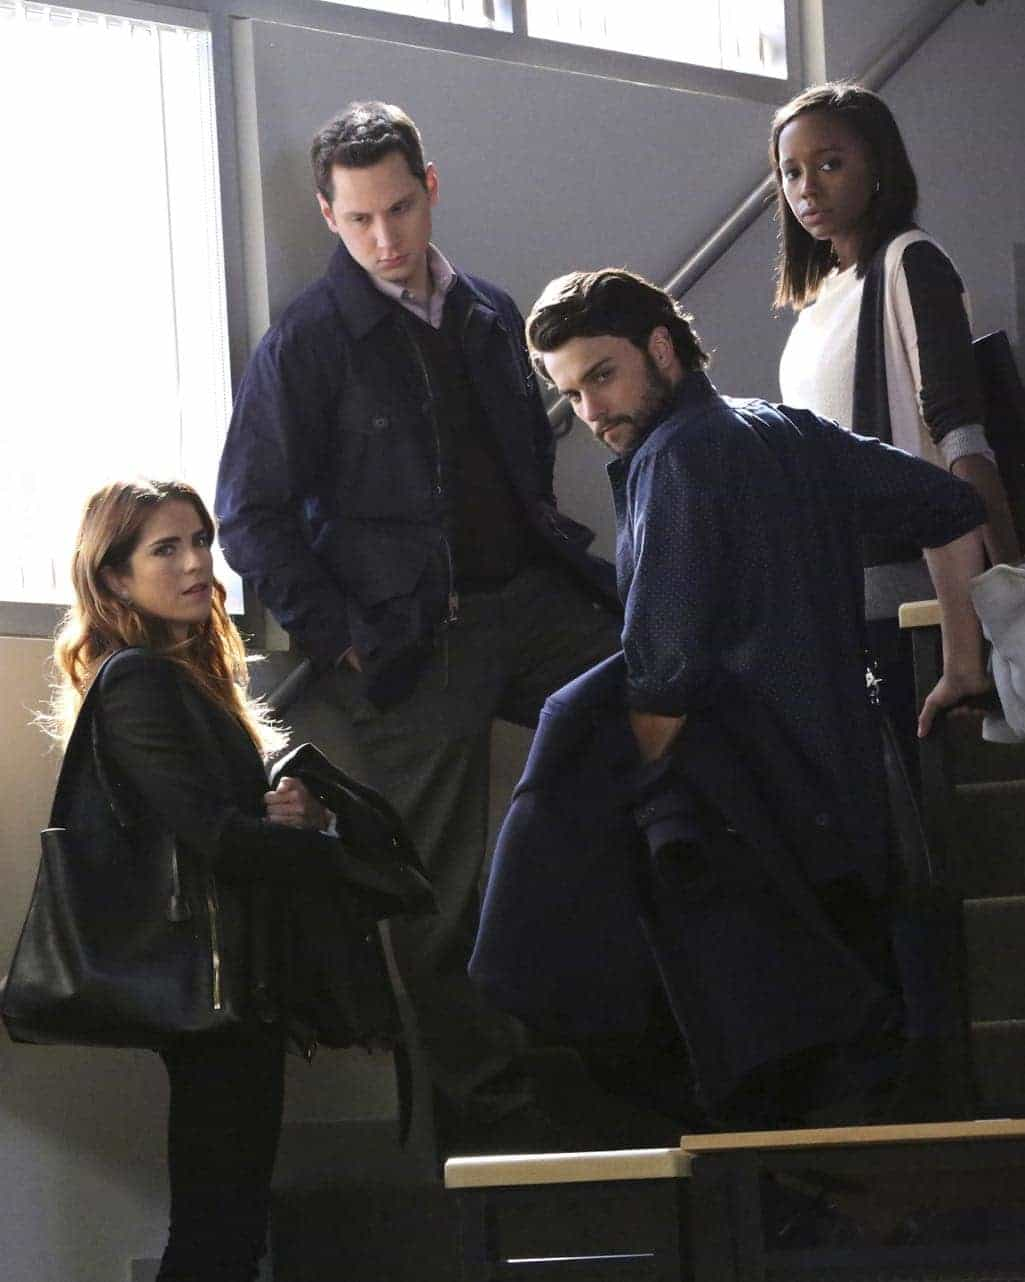 """HOW TO GET AWAY WITH MURDER - """"Is Someone Really Dead?"""" - A revelation in the Wallace Mahoney murder rattles Annalise and the Keating 5, as the team takes on the case of a veteran facing assault charges, on """"How to Get Away with Murder,"""" THURSDAY, OCTOBER 27 (10:00-11:00 p.m. EDT), on the ABC Television Network. (ABC/Mitch Haaseth) KARLA SOUZA, MATT MCGORRY, JACK FALAHEE, AJA NAOMI KING"""